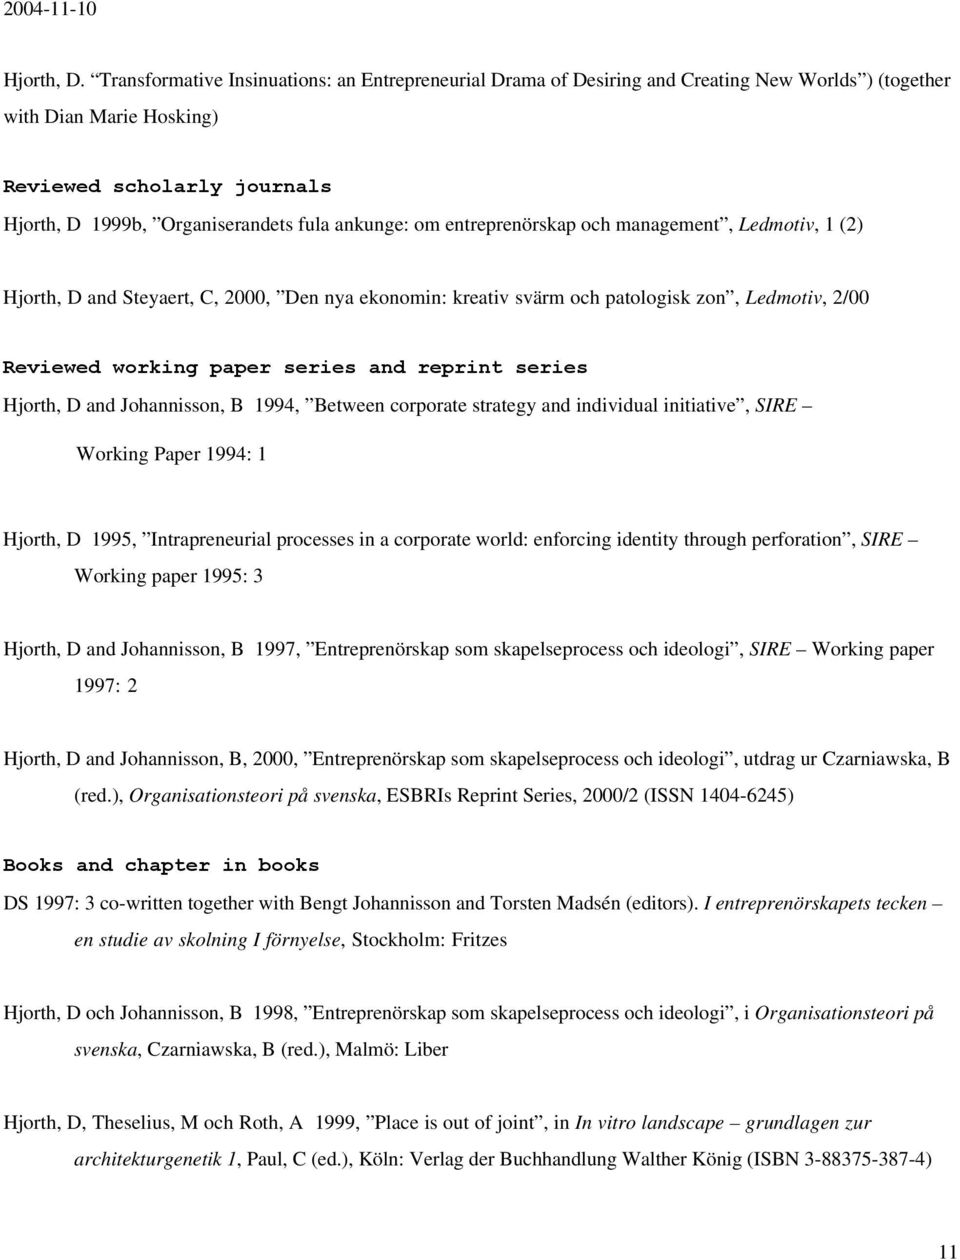 ankunge: om entreprenörskap och management, Ledmotiv, 1 (2) Hjorth, D and Steyaert, C, 2000, Den nya ekonomin: kreativ svärm och patologisk zon, Ledmotiv, 2/00 Reviewed working paper series and